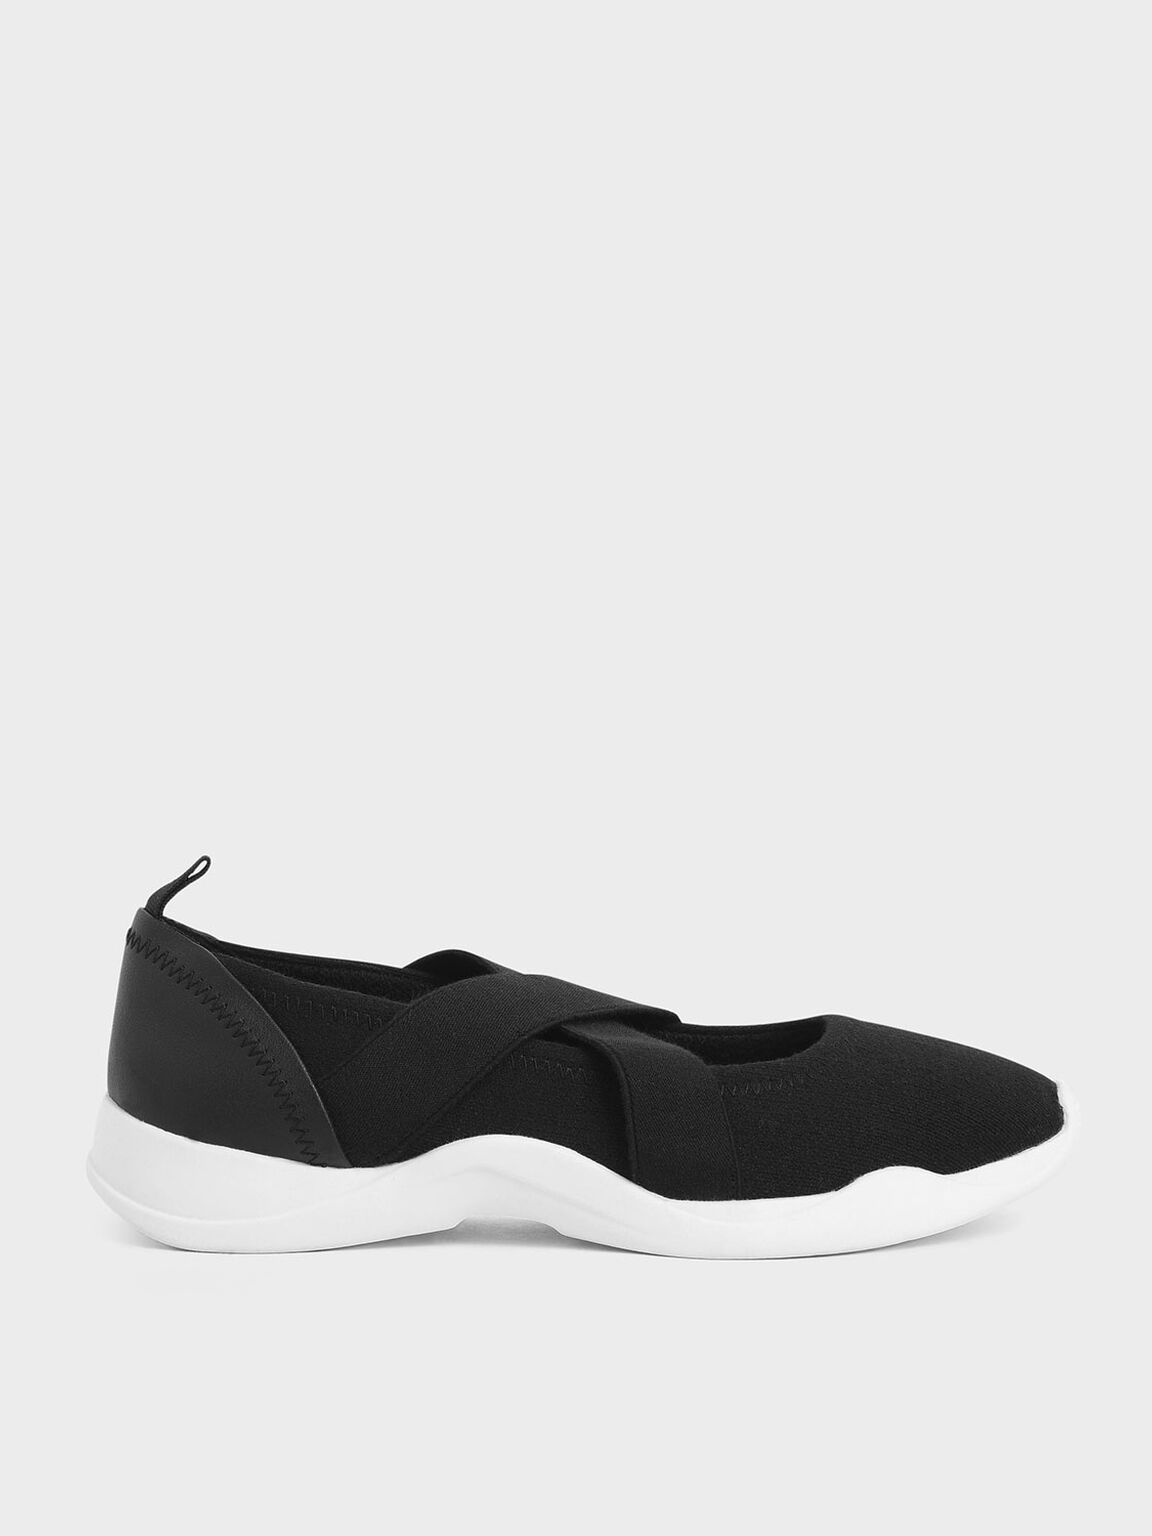 Criss-Cross Slip-On Sneakers, Black, hi-res